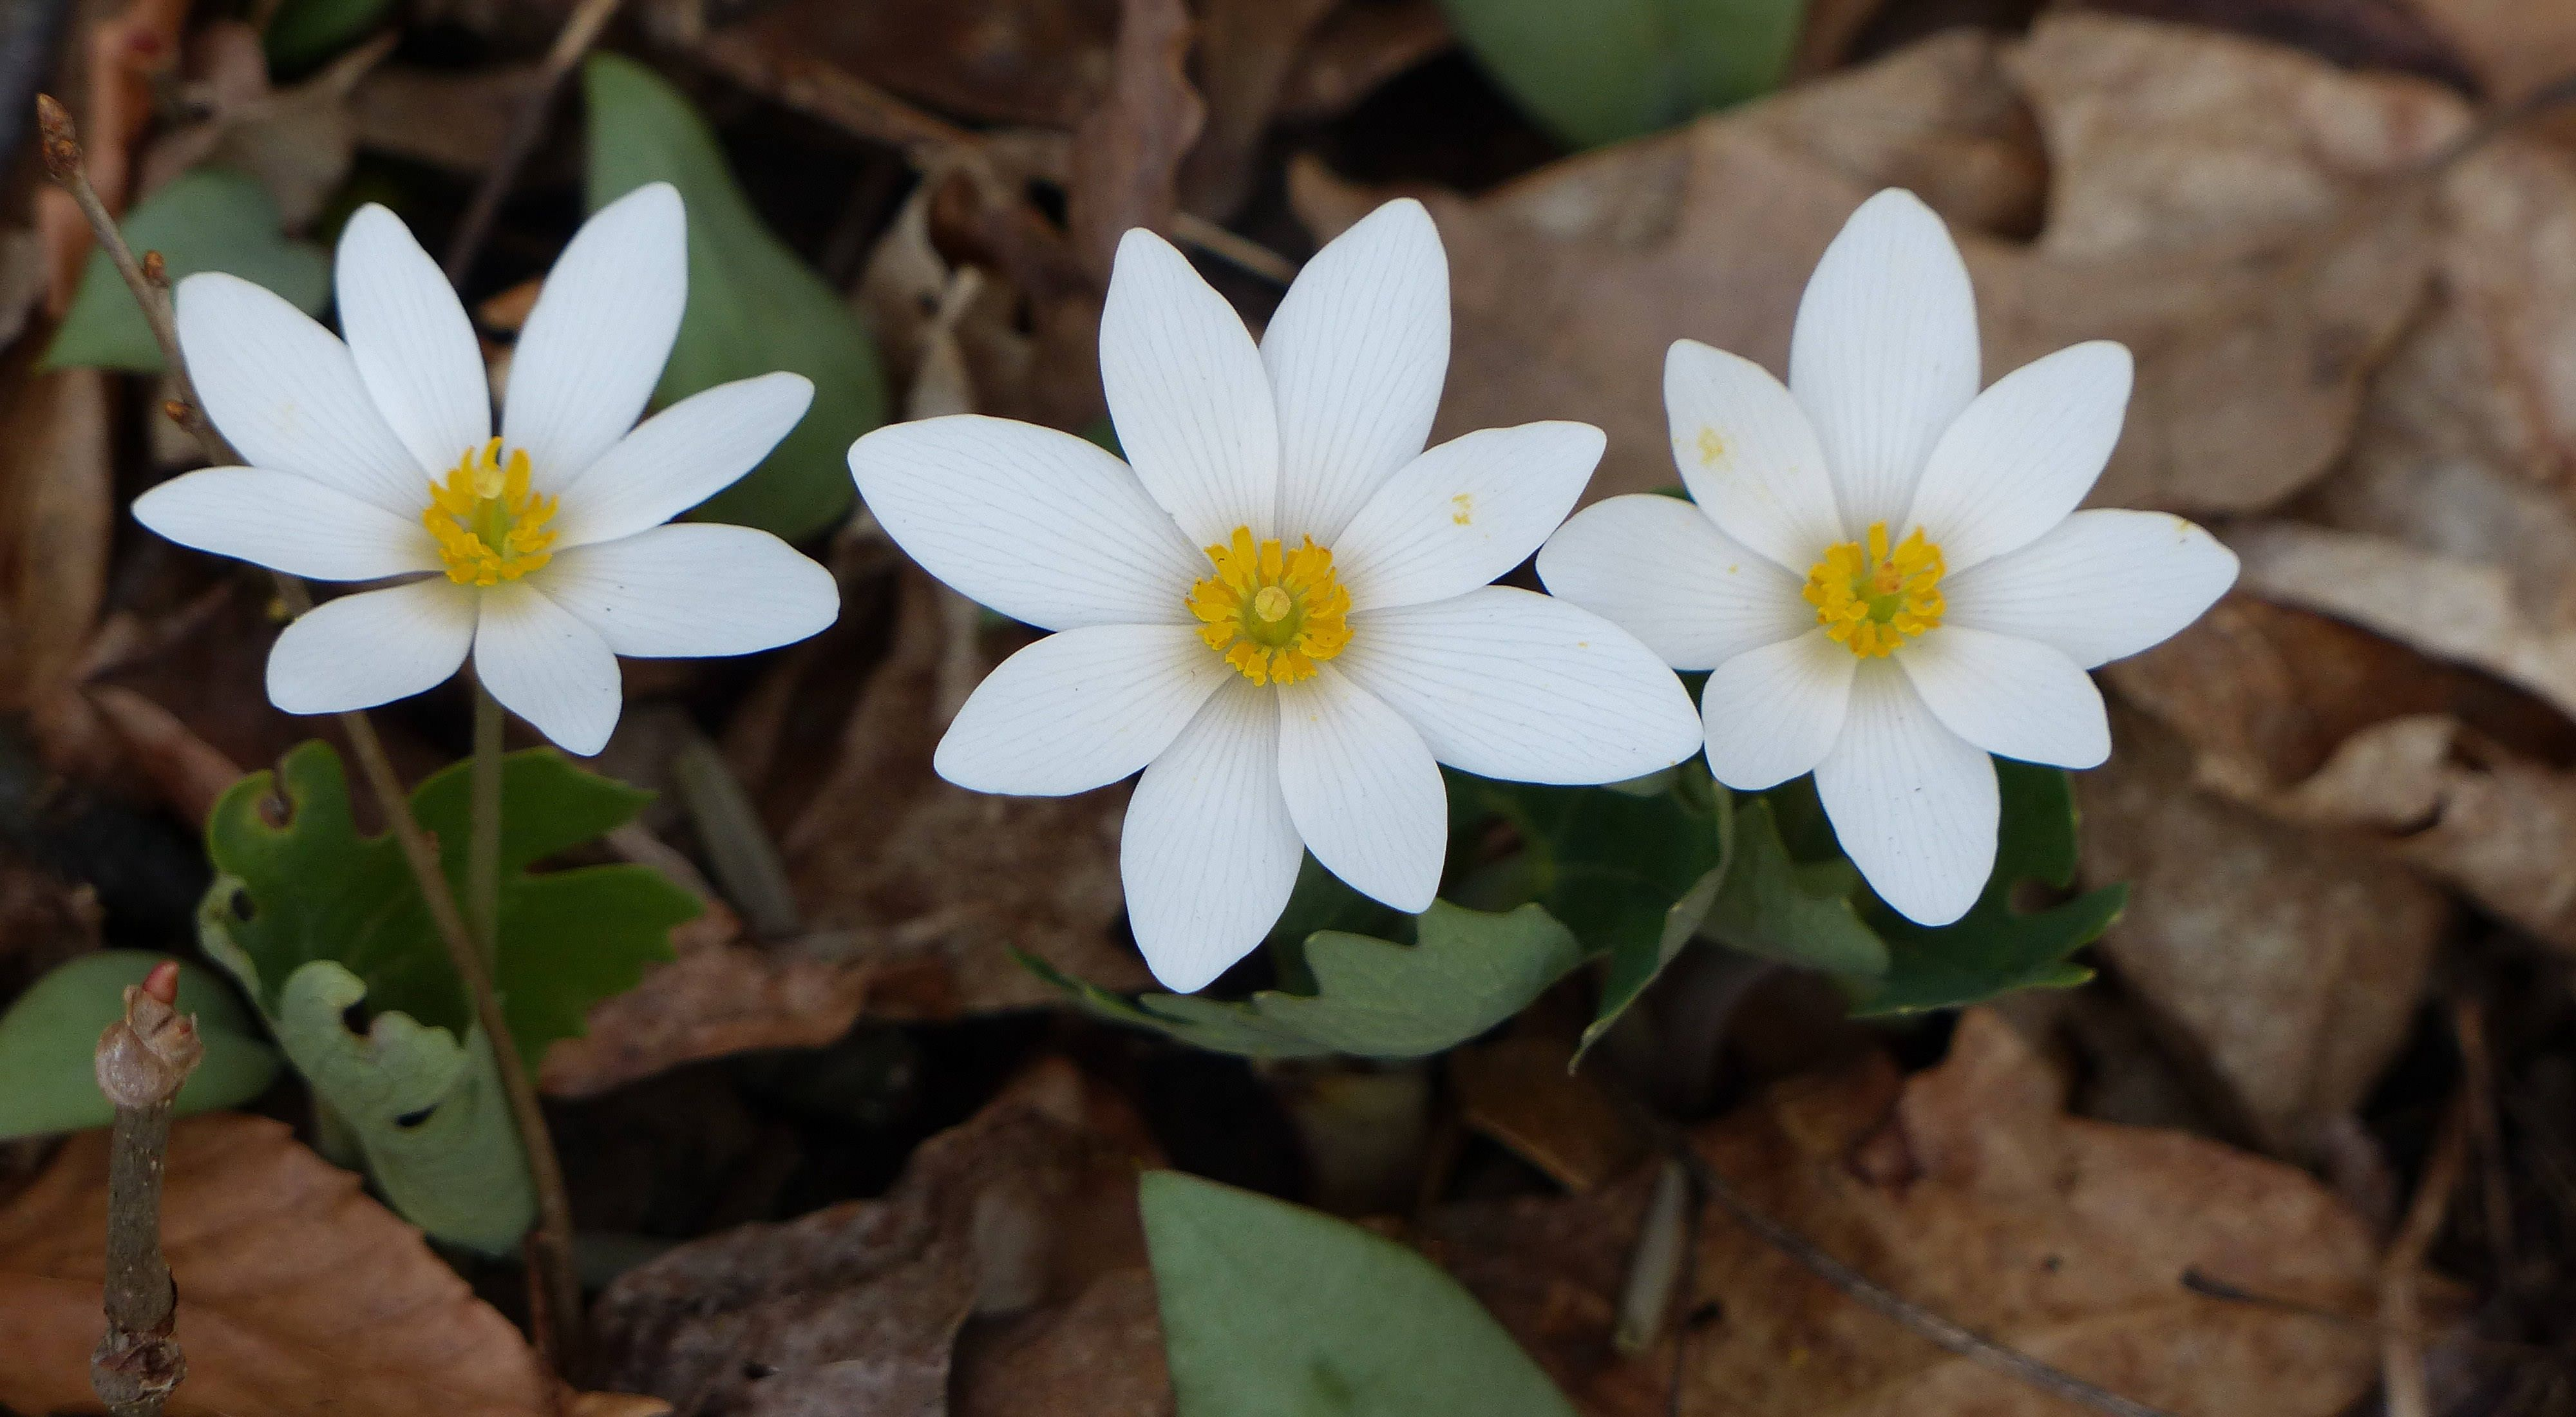 Three white flowers bloom on the forest floor.